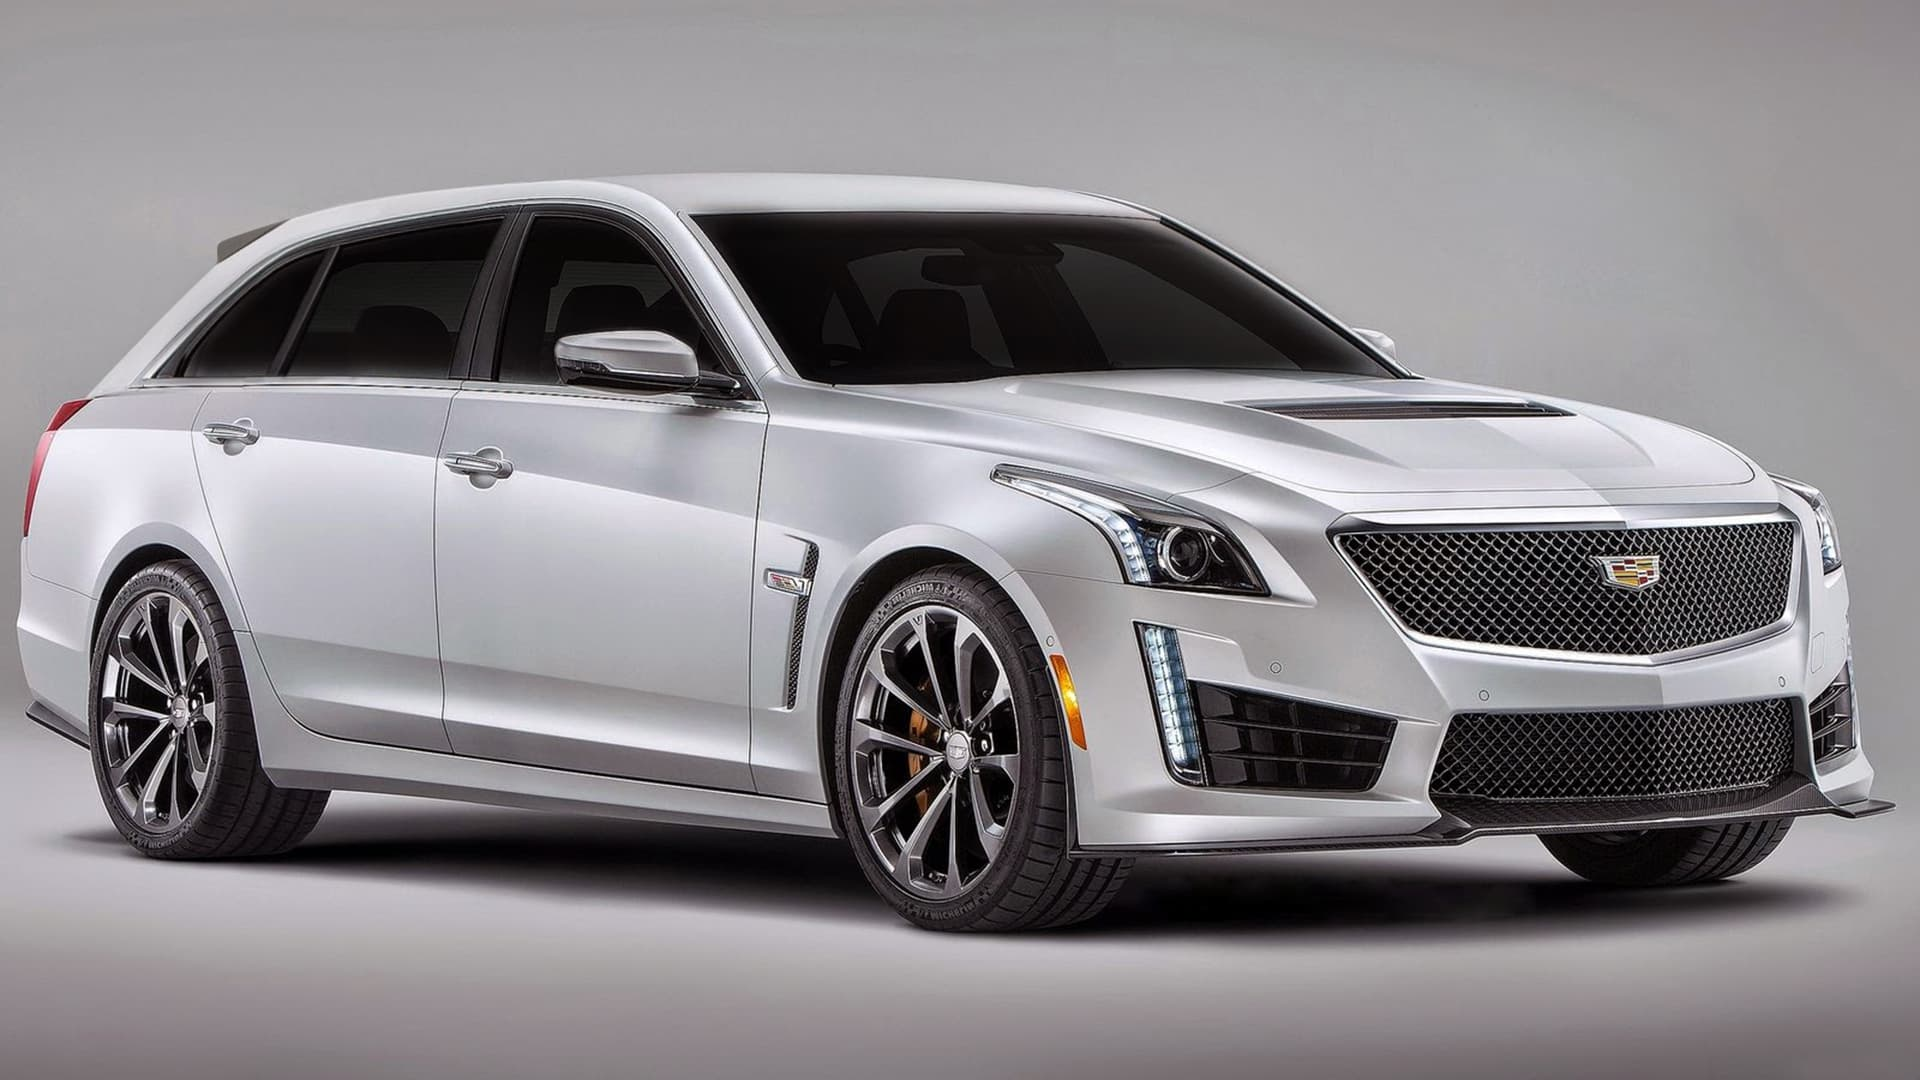 2016 cadillac cts v wallpapers hd high quality resolution. Black Bedroom Furniture Sets. Home Design Ideas